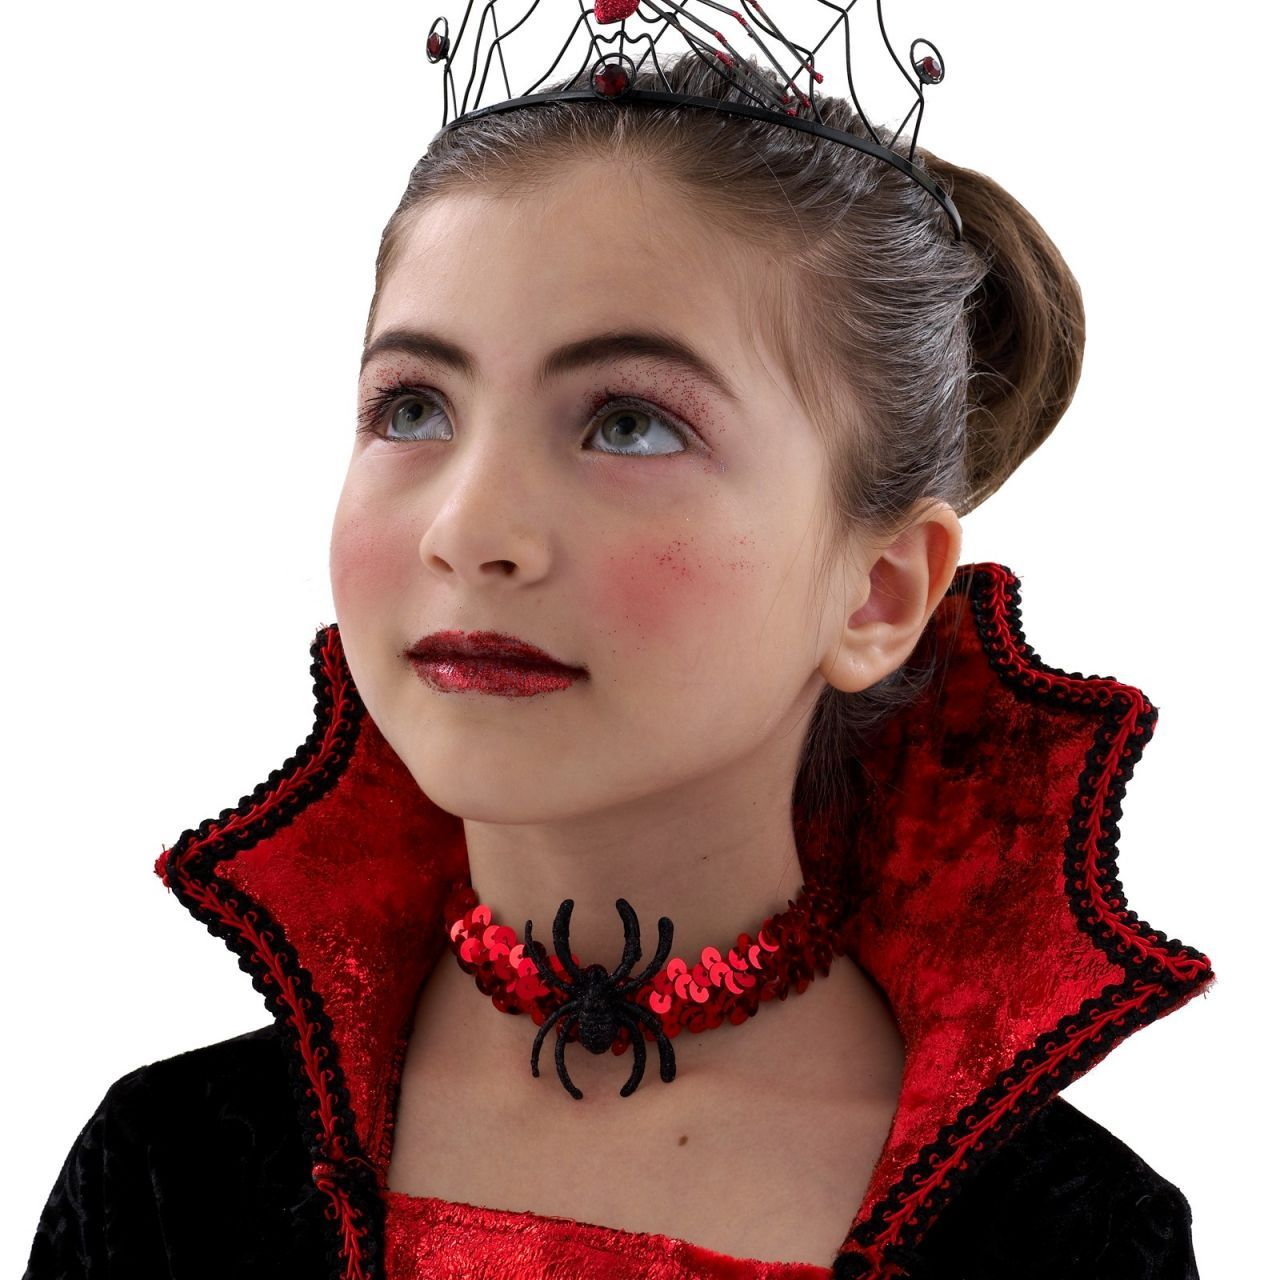 kid vampire makeup ideas halloween pinterest kids. Black Bedroom Furniture Sets. Home Design Ideas